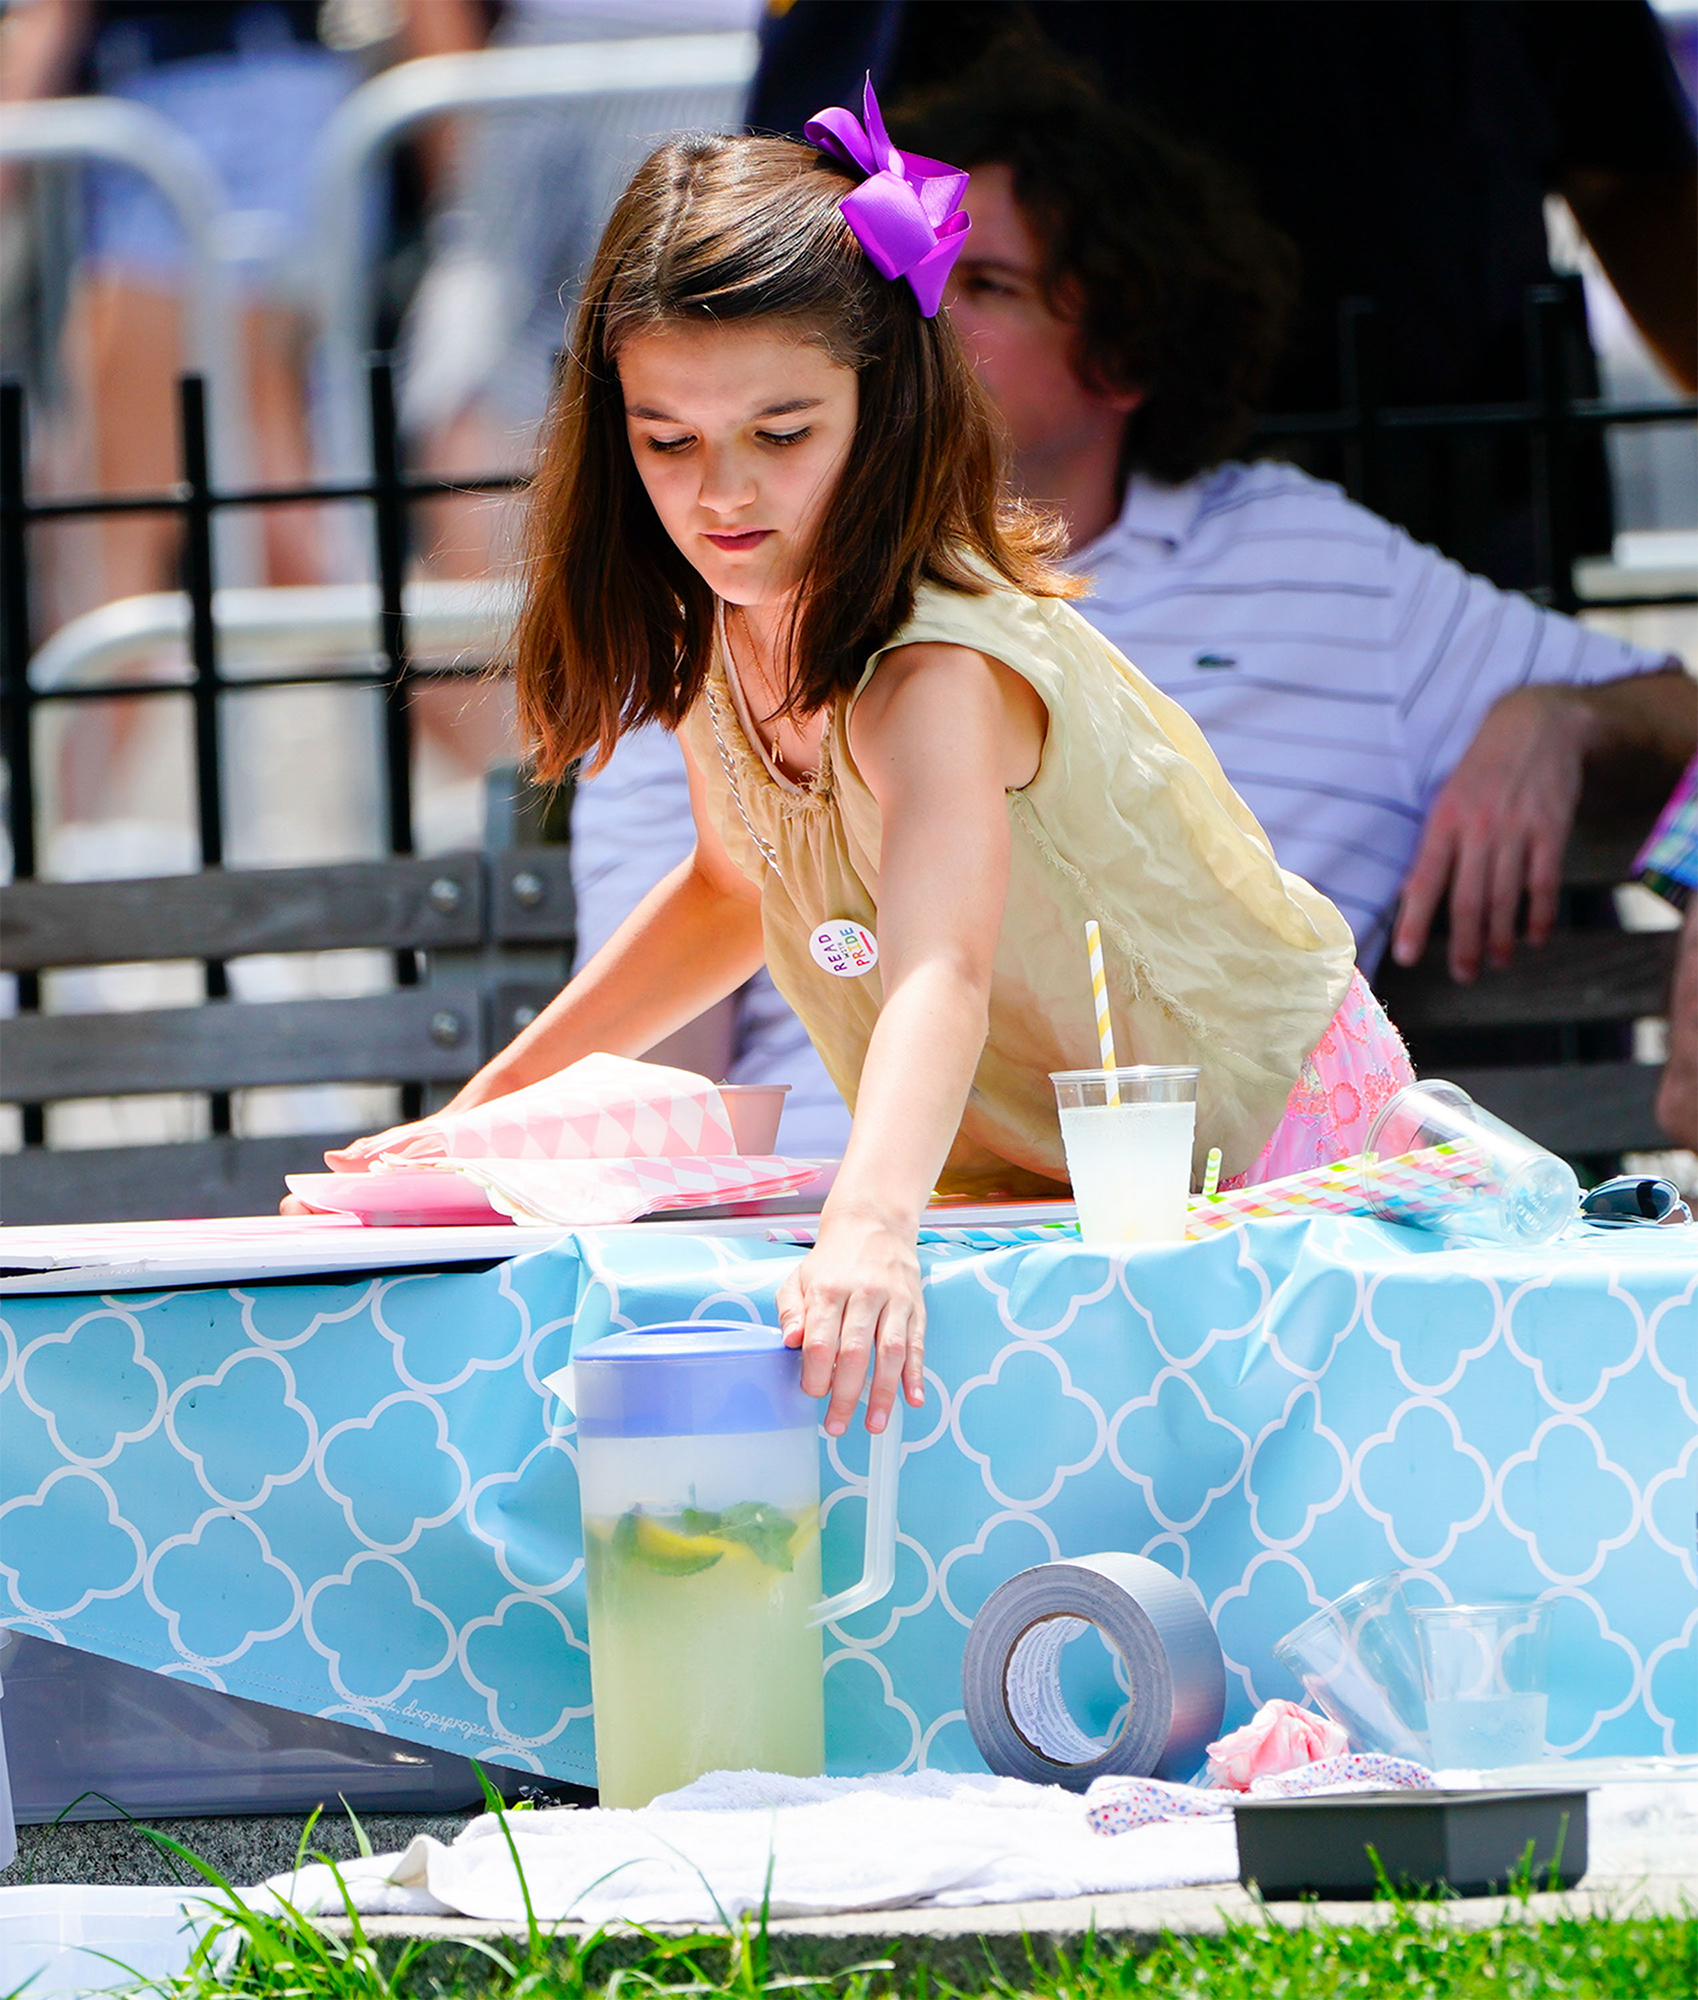 EXCLUSIVE: Suri Cruise Seen Selling Lemonade At The Annual Gay Pride Parade In New York